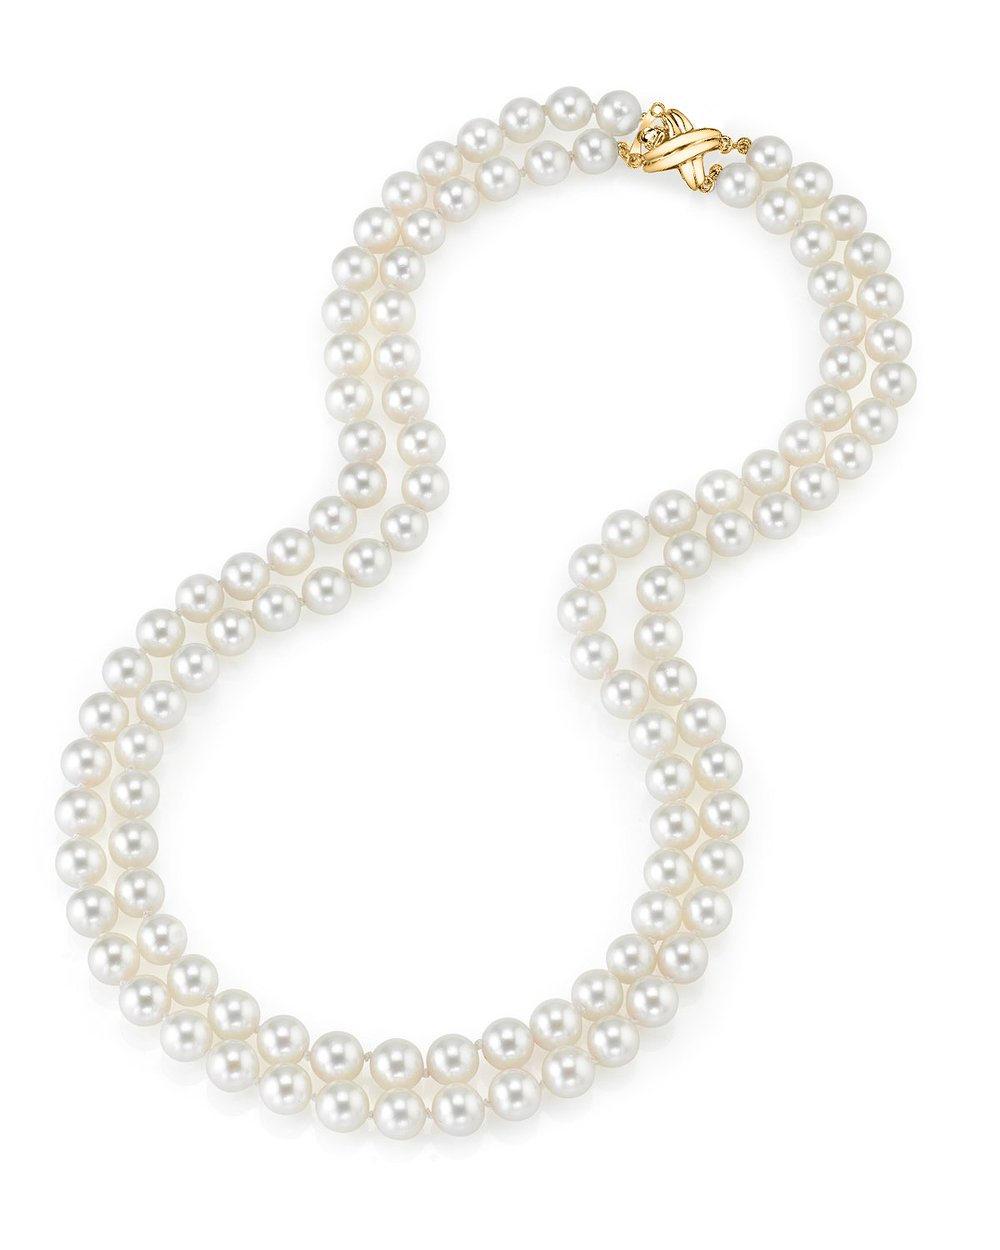 14K Gold Japanese Akoya White Cultured Pearl Double Strand Necklace - AAA Quality, 17-18'' Necklace Length